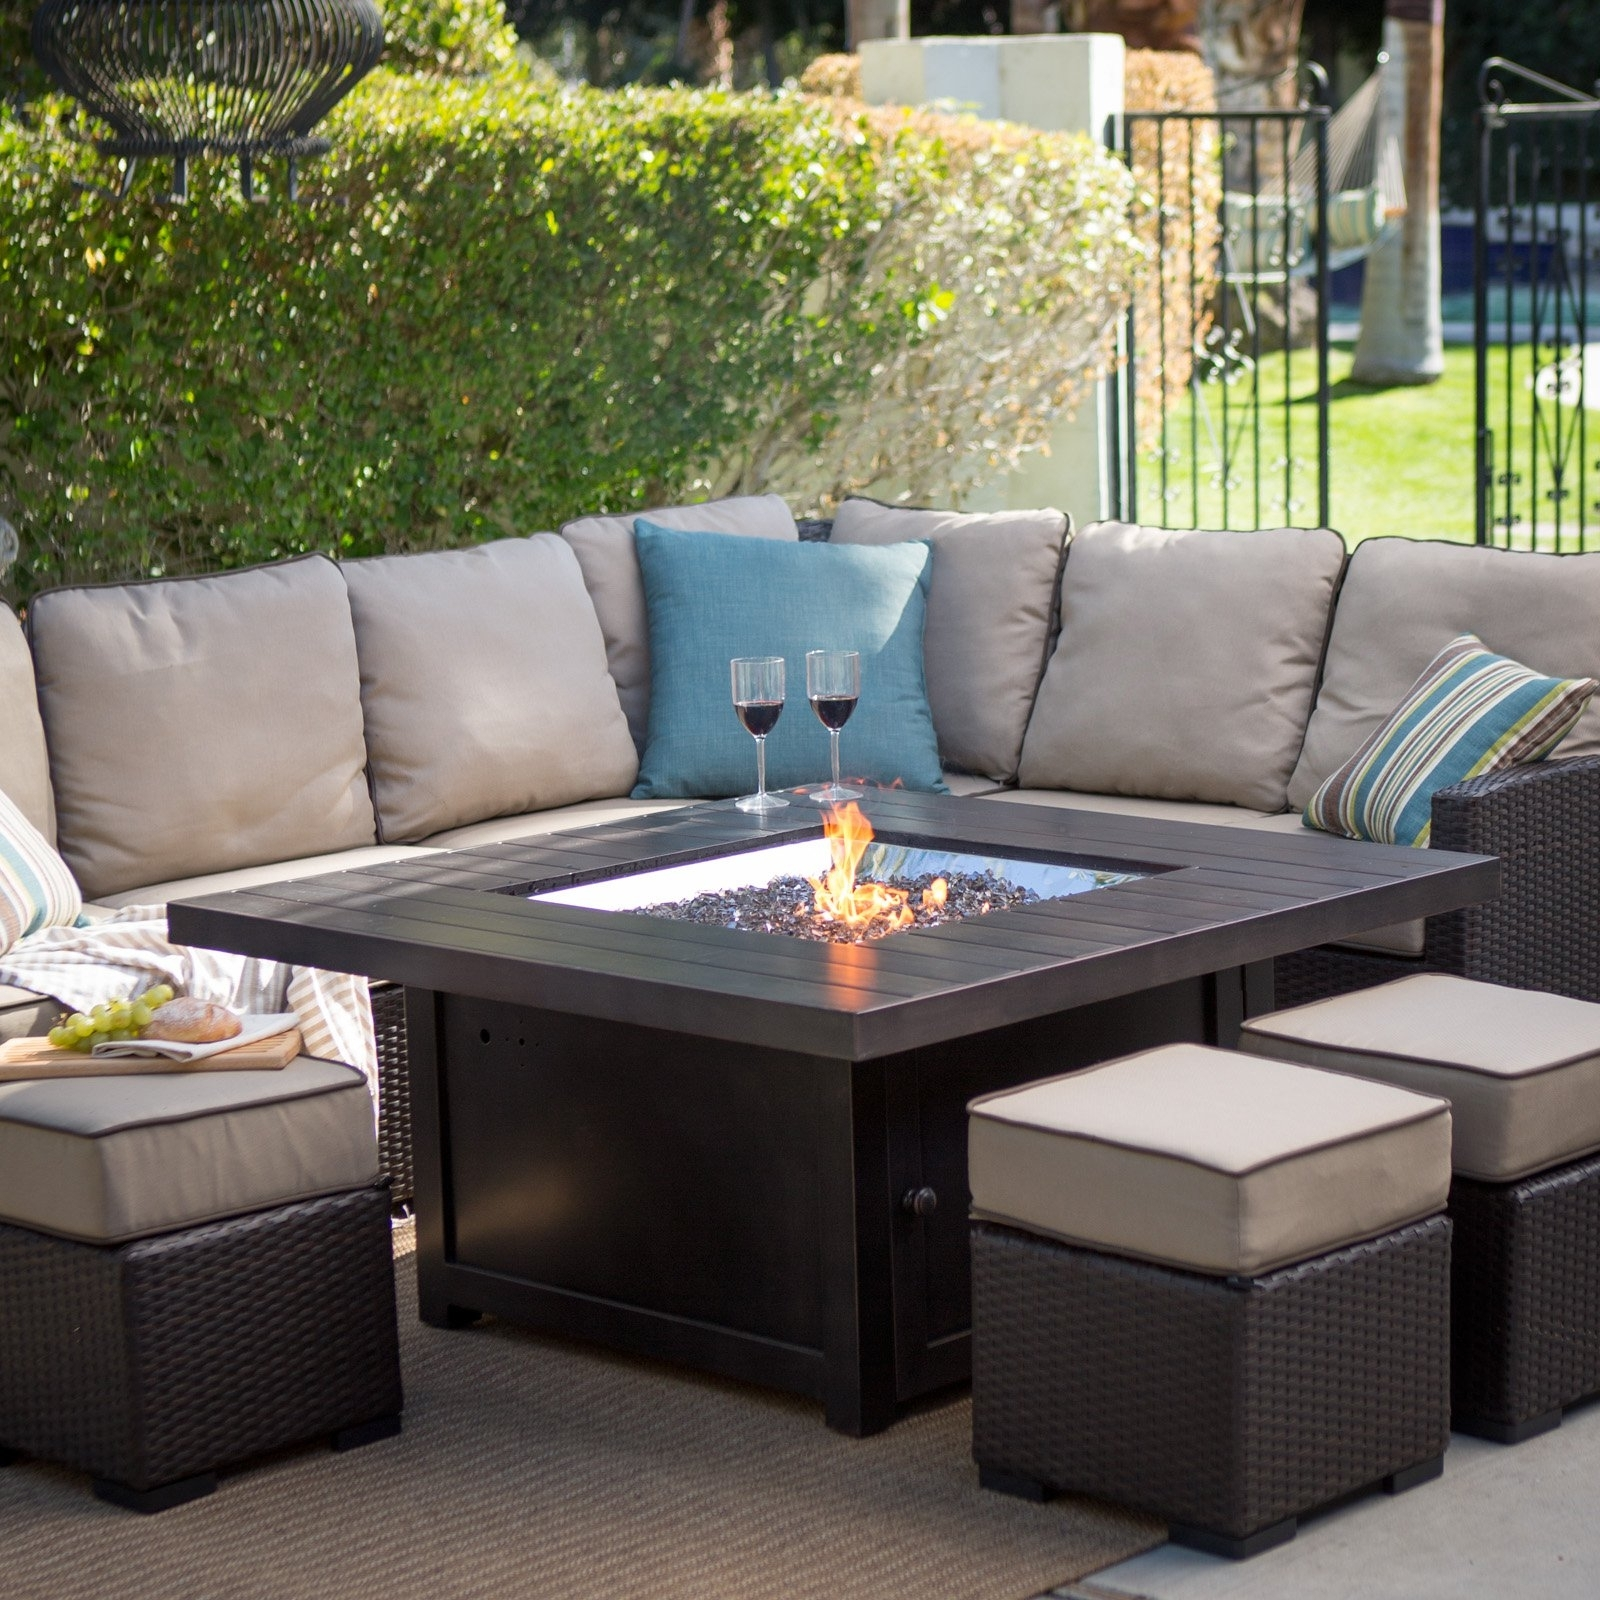 Well Known Patio Conversation Sets With Fire Pit With Furniture: High Quality Patio Furniture Columbus Ohio And Fire Pit (View 6 of 20)